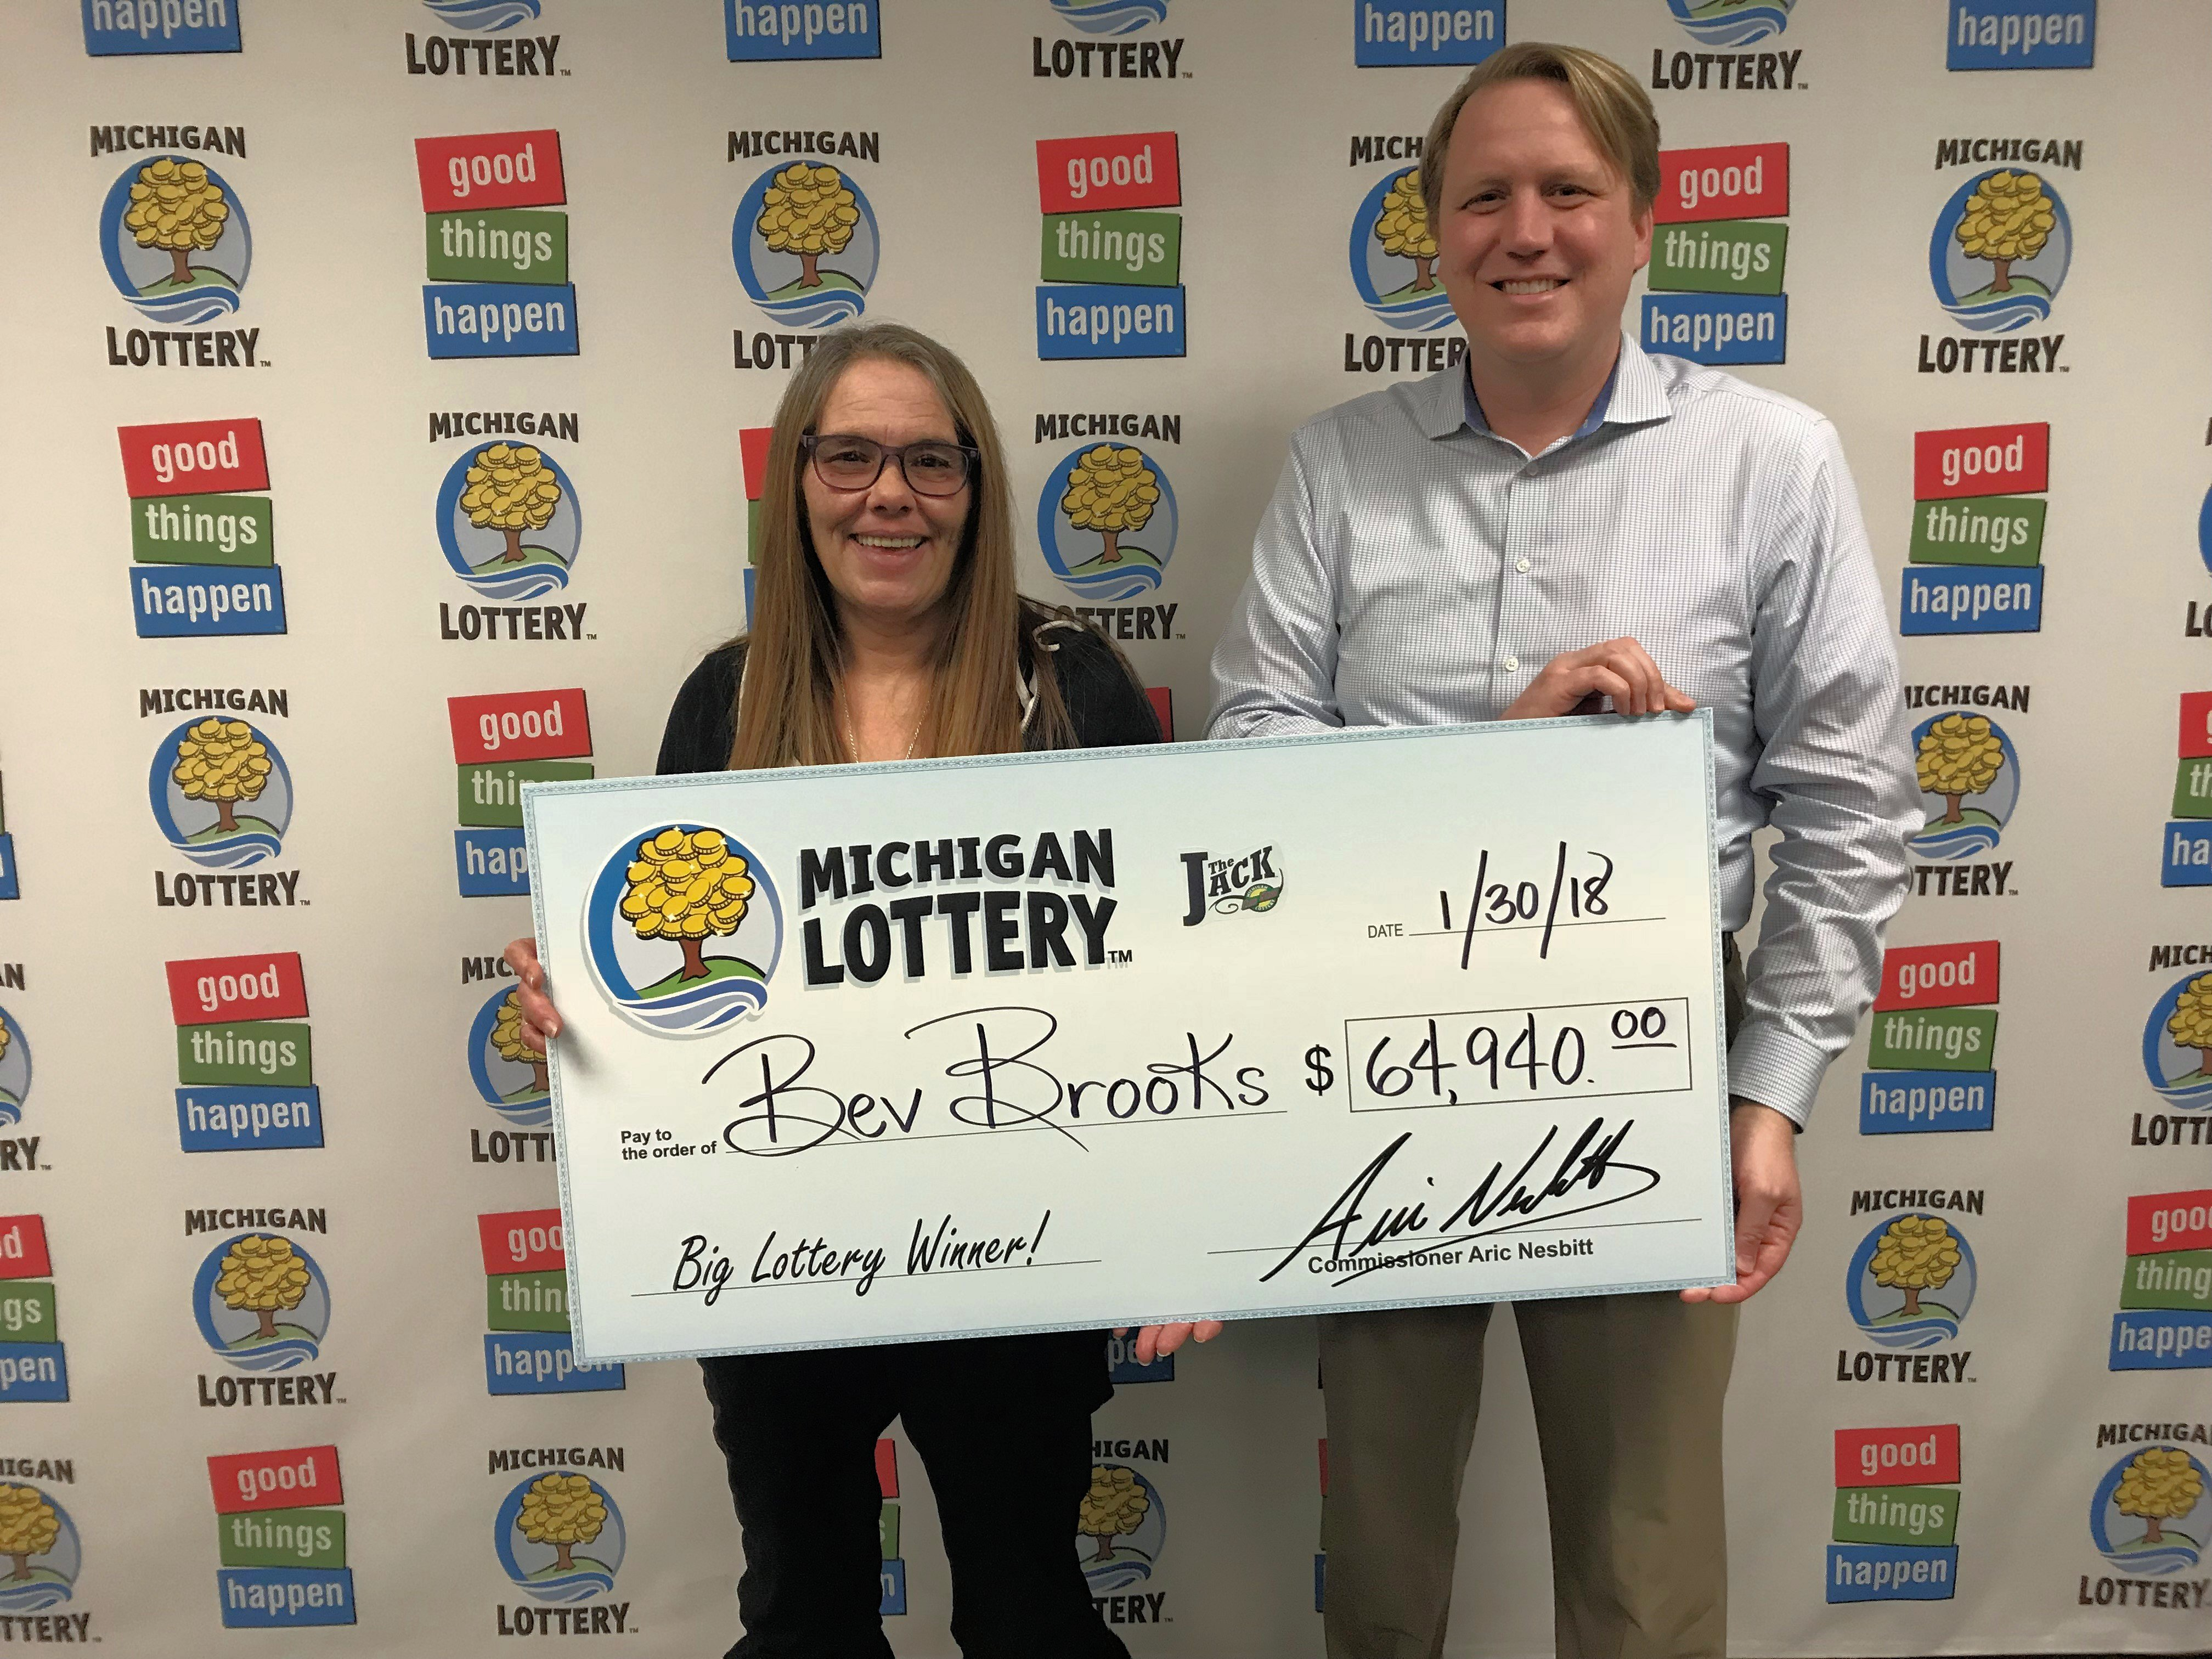 Up to date Michigan MI lottery results such as the winning numbers for Powerball Mega Millions and Classic Lotto 47